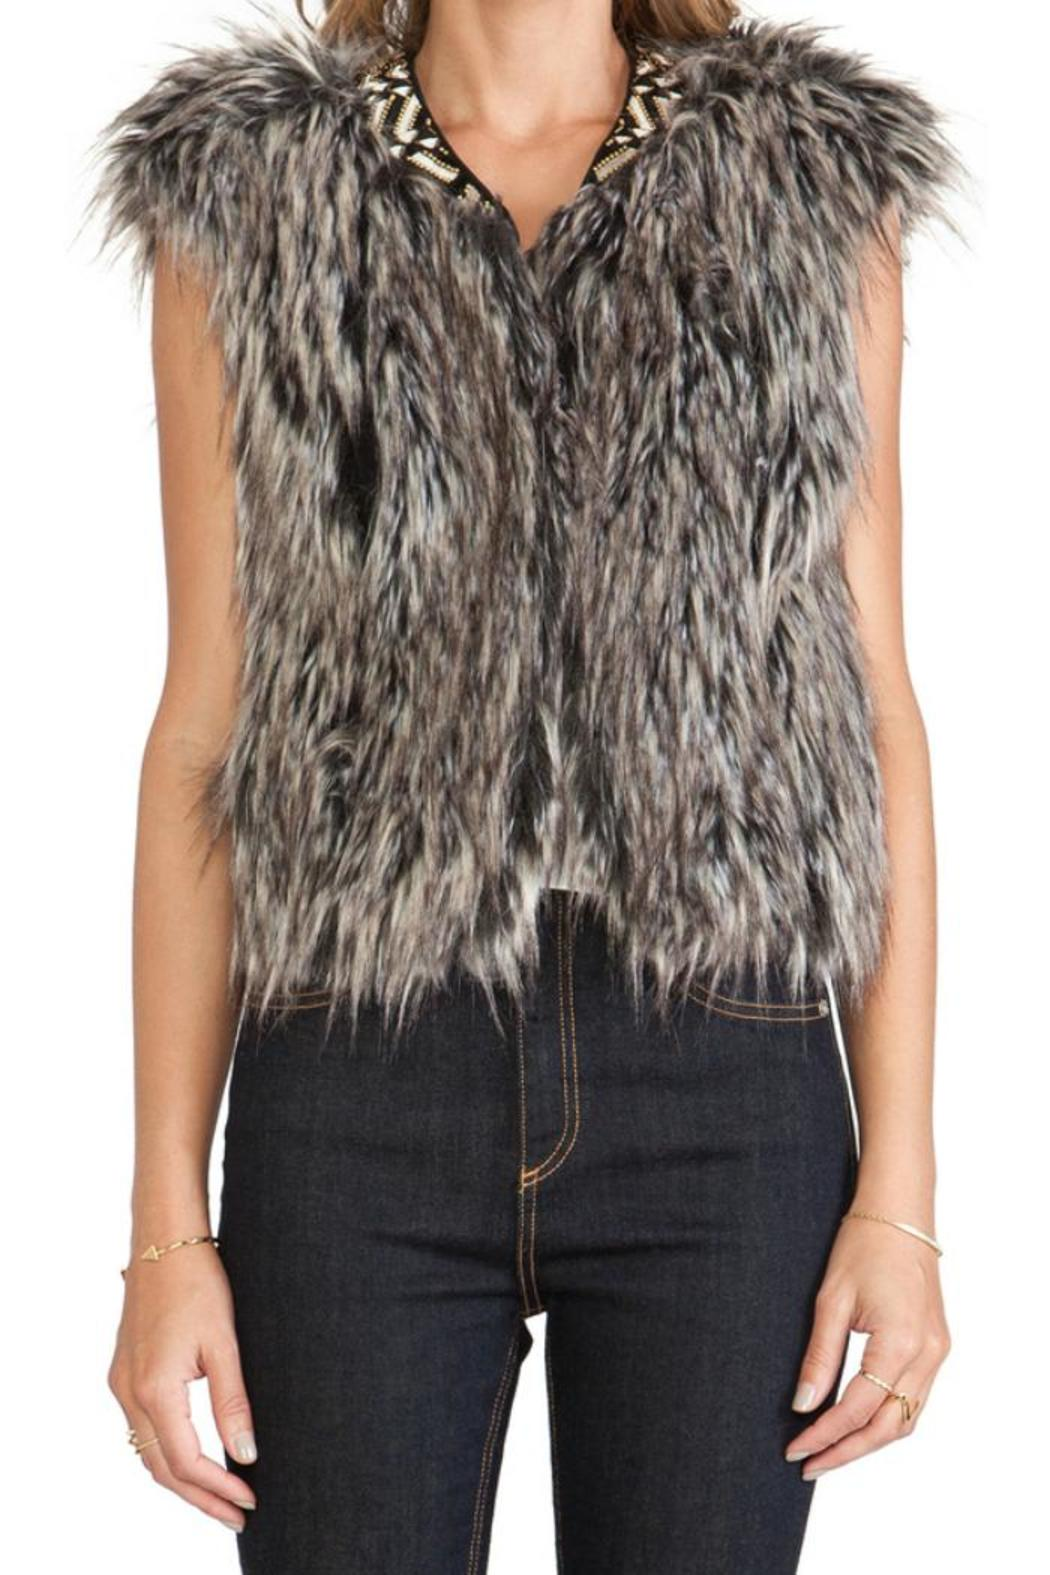 Twelfth Street by Cynthia Vincent Faux Fur Vest - Back Cropped Image